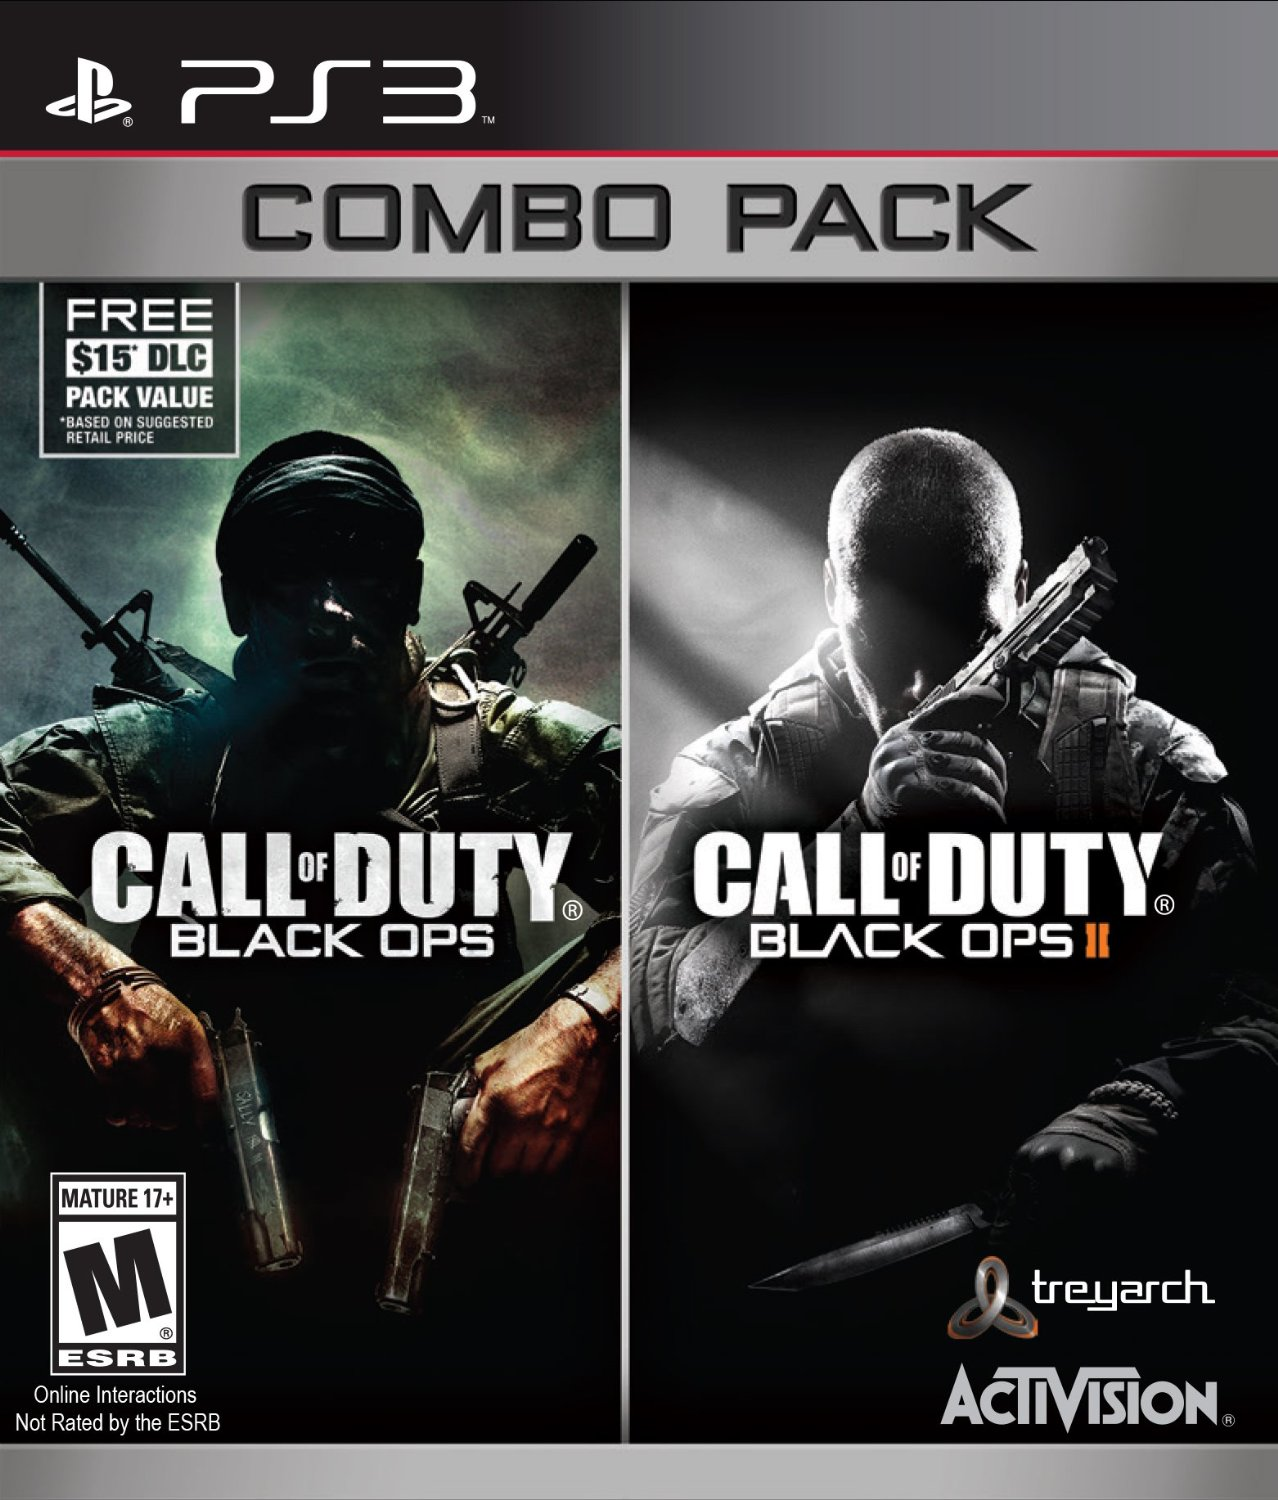 image-1453322-call-of-duty-black-ops-combo.jpg